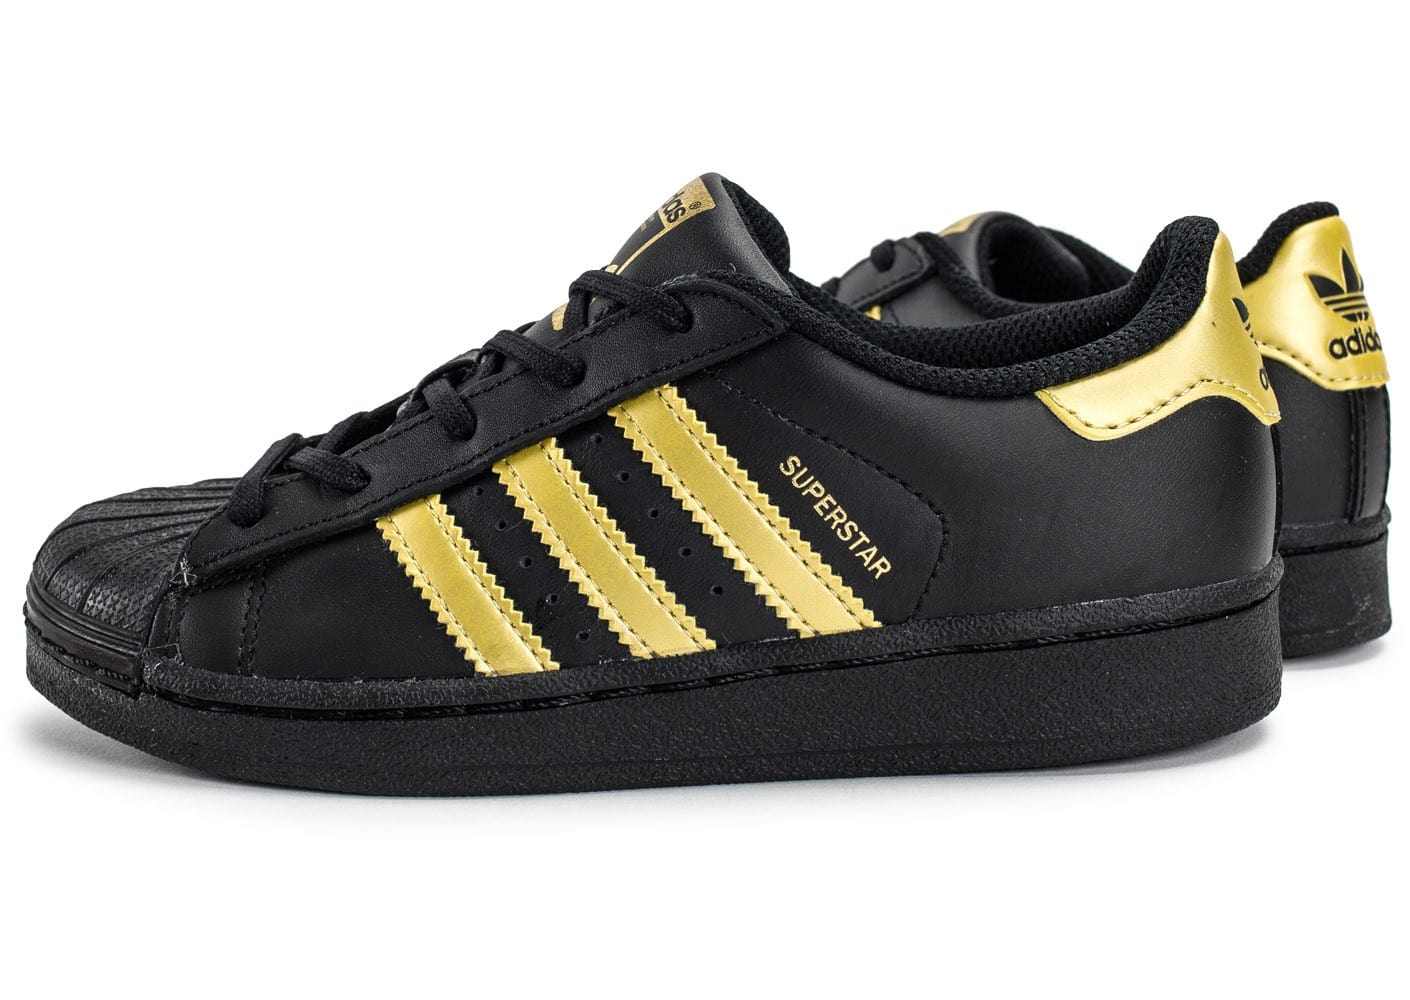 adidas superstar enfant black gold chaussures adidas chausport. Black Bedroom Furniture Sets. Home Design Ideas